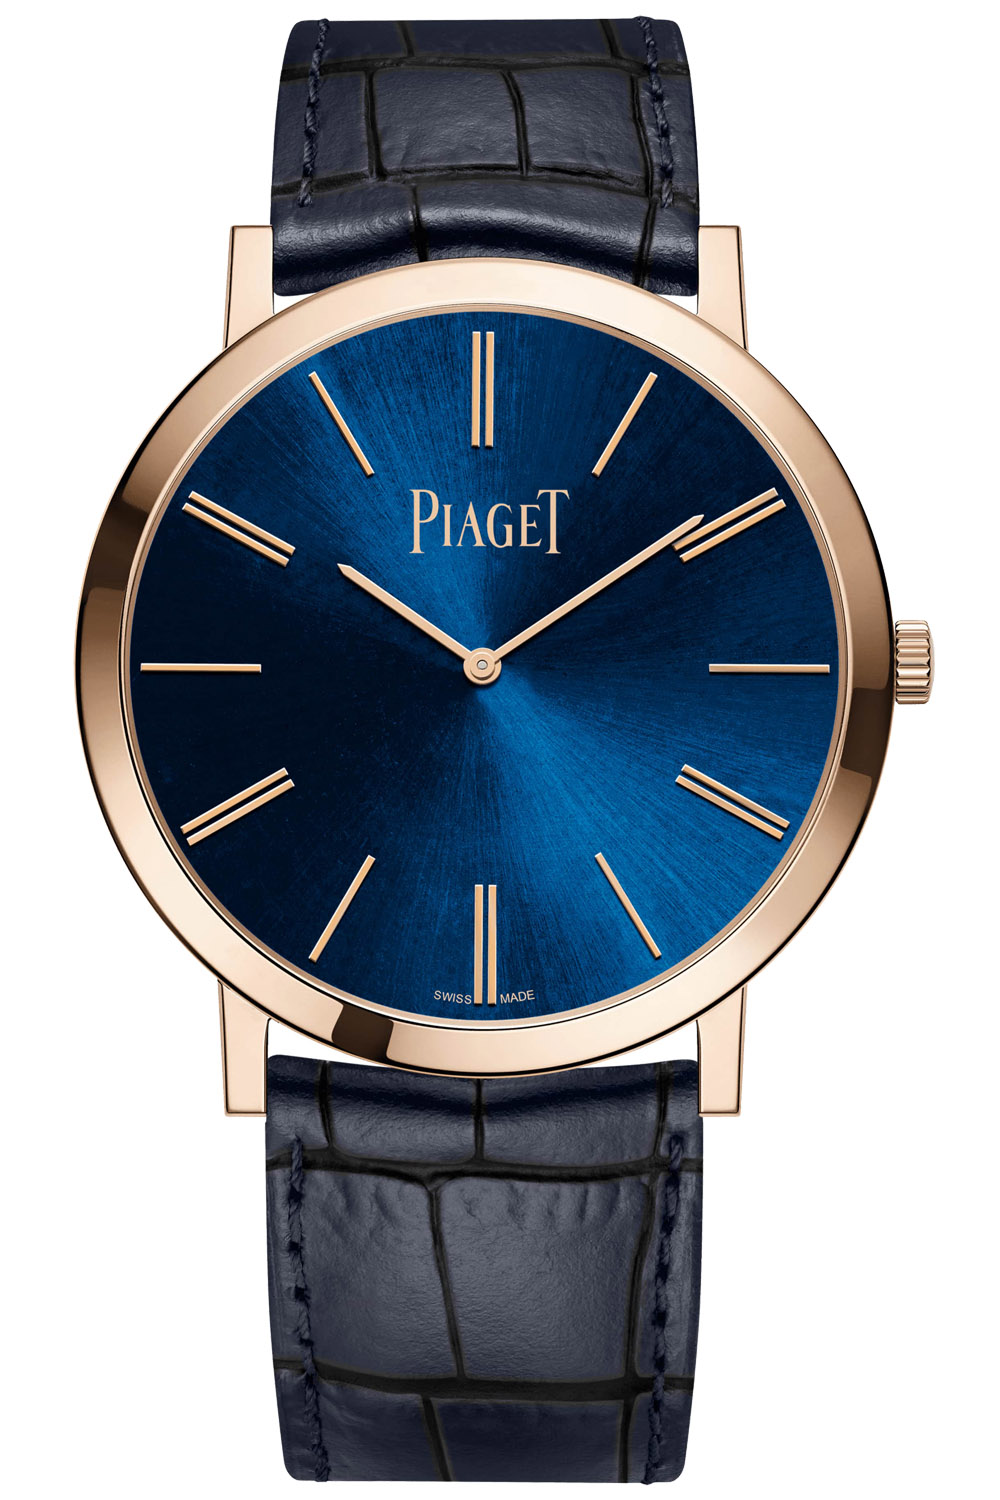 Piaget Altiplano 38mm Hand-Wound Blue Dial Pink Gold - 2020 new - G0A45050